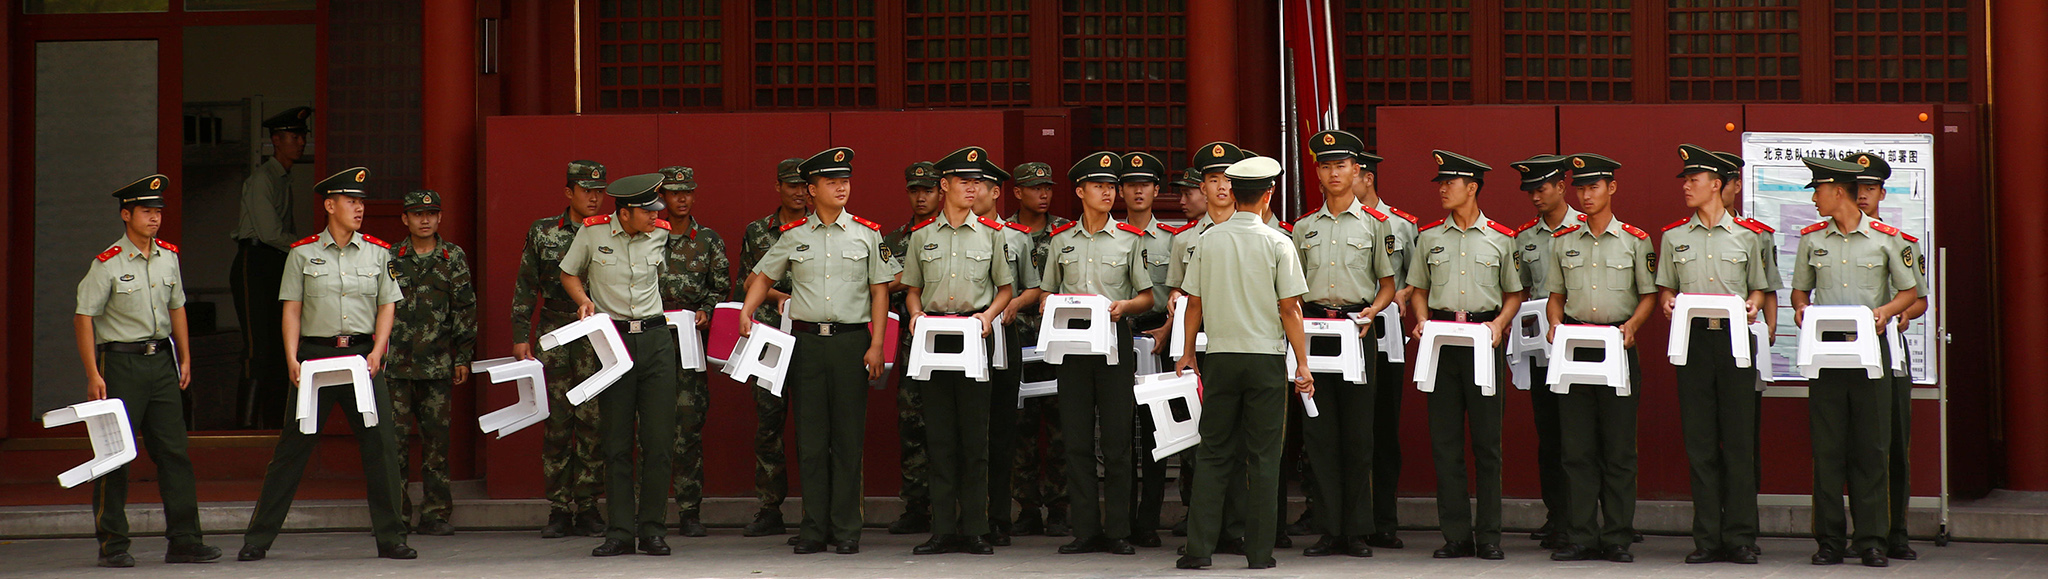 Paramilitary policemen listen to the officer addressing them in the Forbidden City in Beijing, China, September 9, 2016. REUTERS/Thomas Peter   TPX IMAGES OF THE DAY